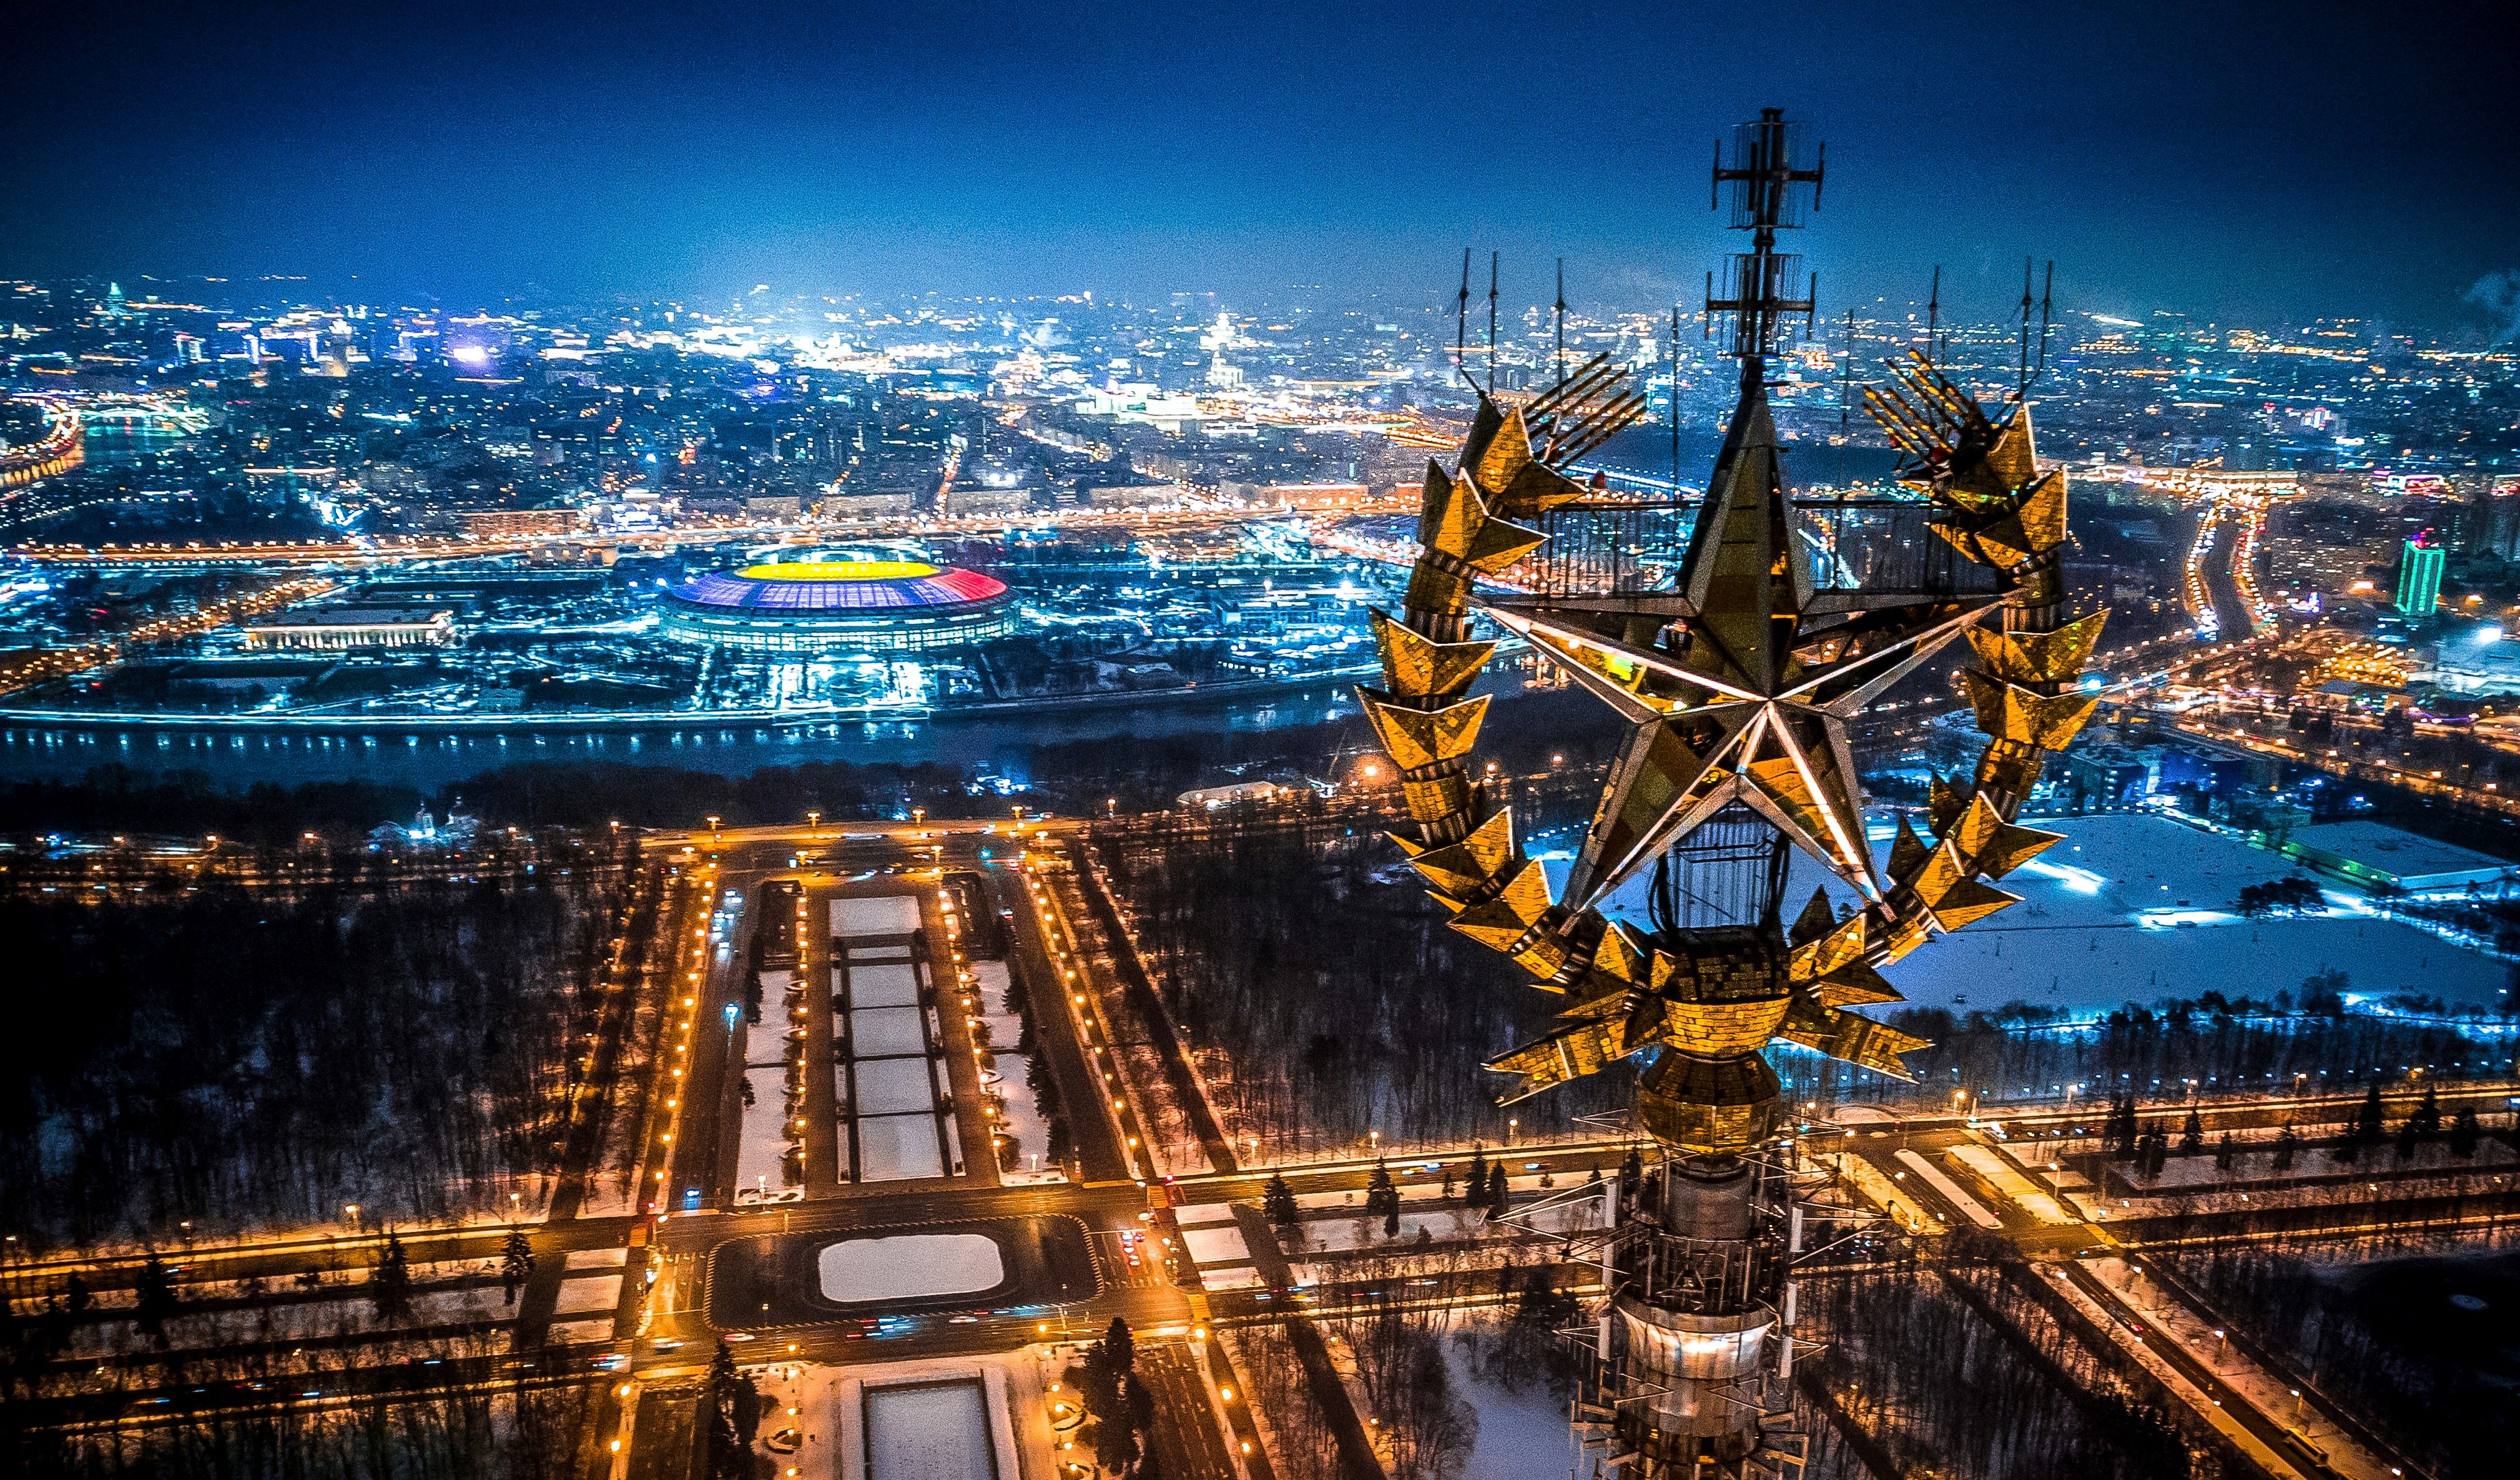 TOPSHOT - An aerial view taken in Moscow on January 27, 2018 shows a star on top of the Moscow State University, Luzhniki Stadium and the Moskva River. (Photo by Dmitry SEREBRYAKOV / AFP) (Photo credit should read DMITRY SEREBRYAKOV/AFP via Getty Images)